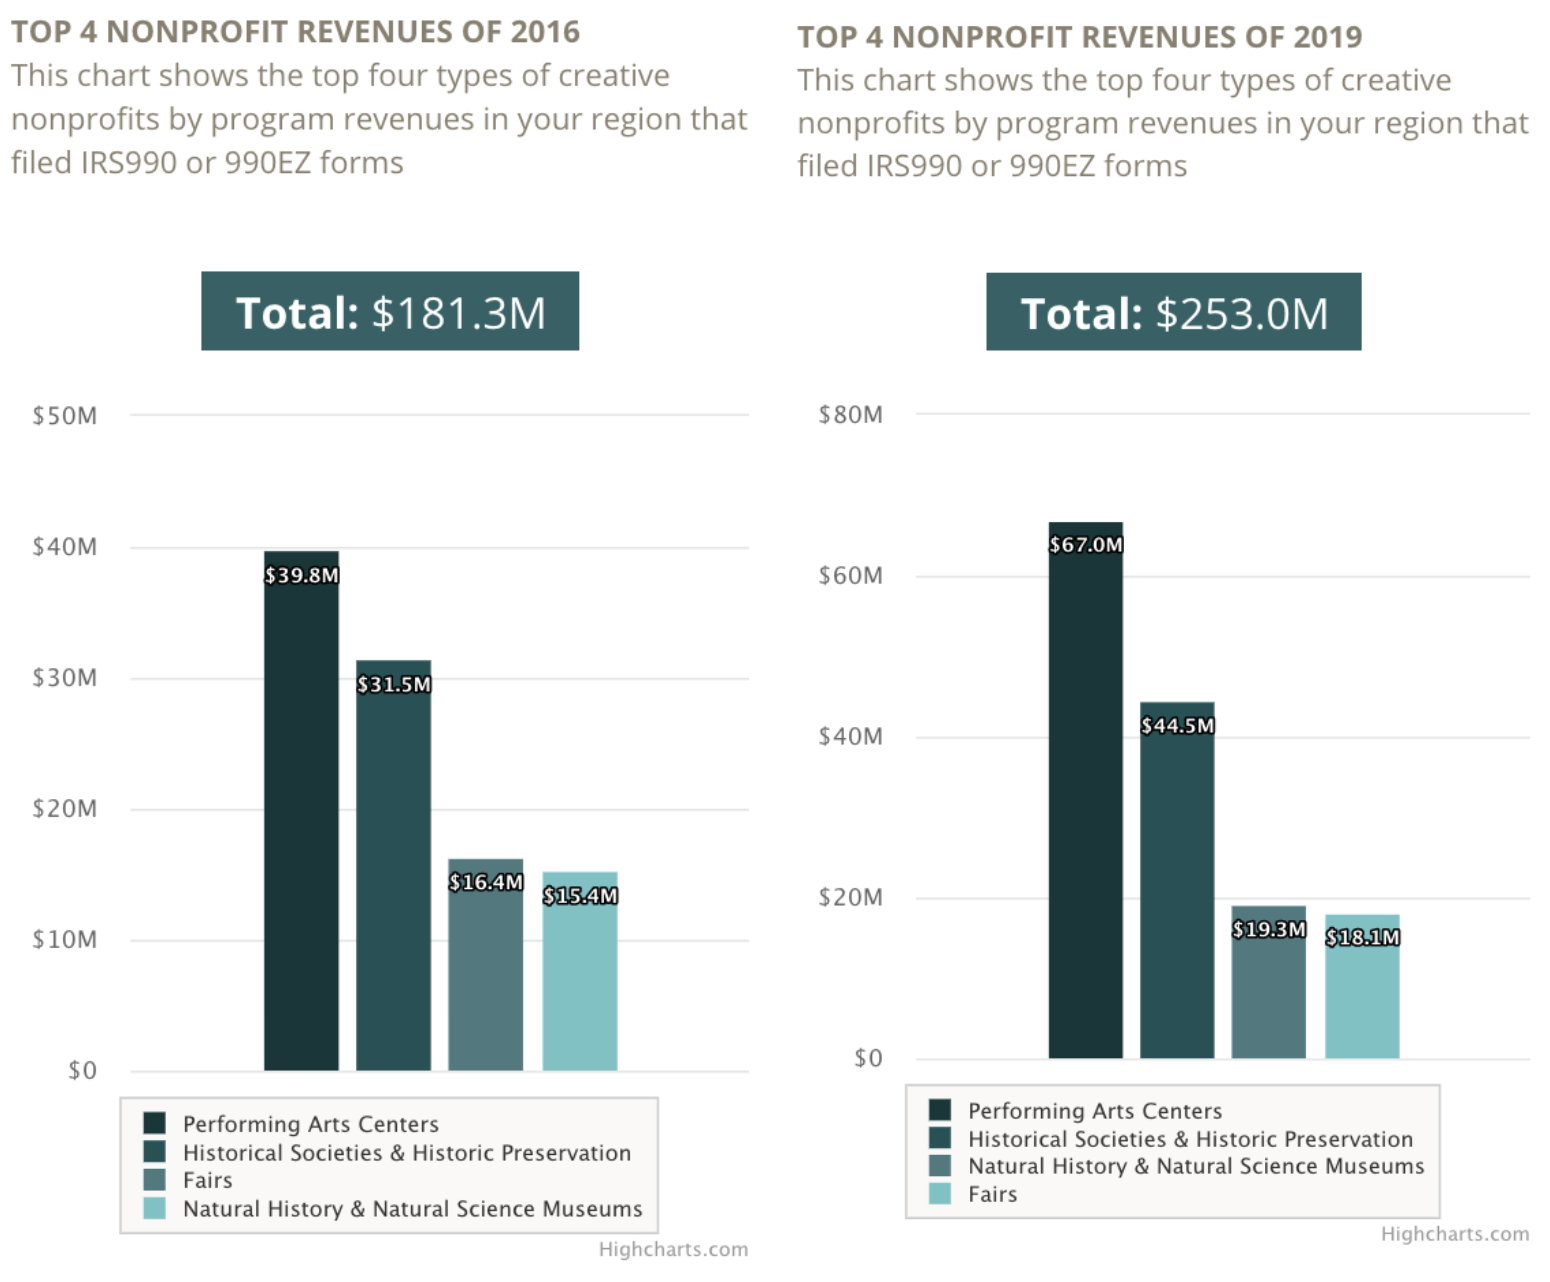 Top 4 Nonprofit Revenues of 2016 and 2019